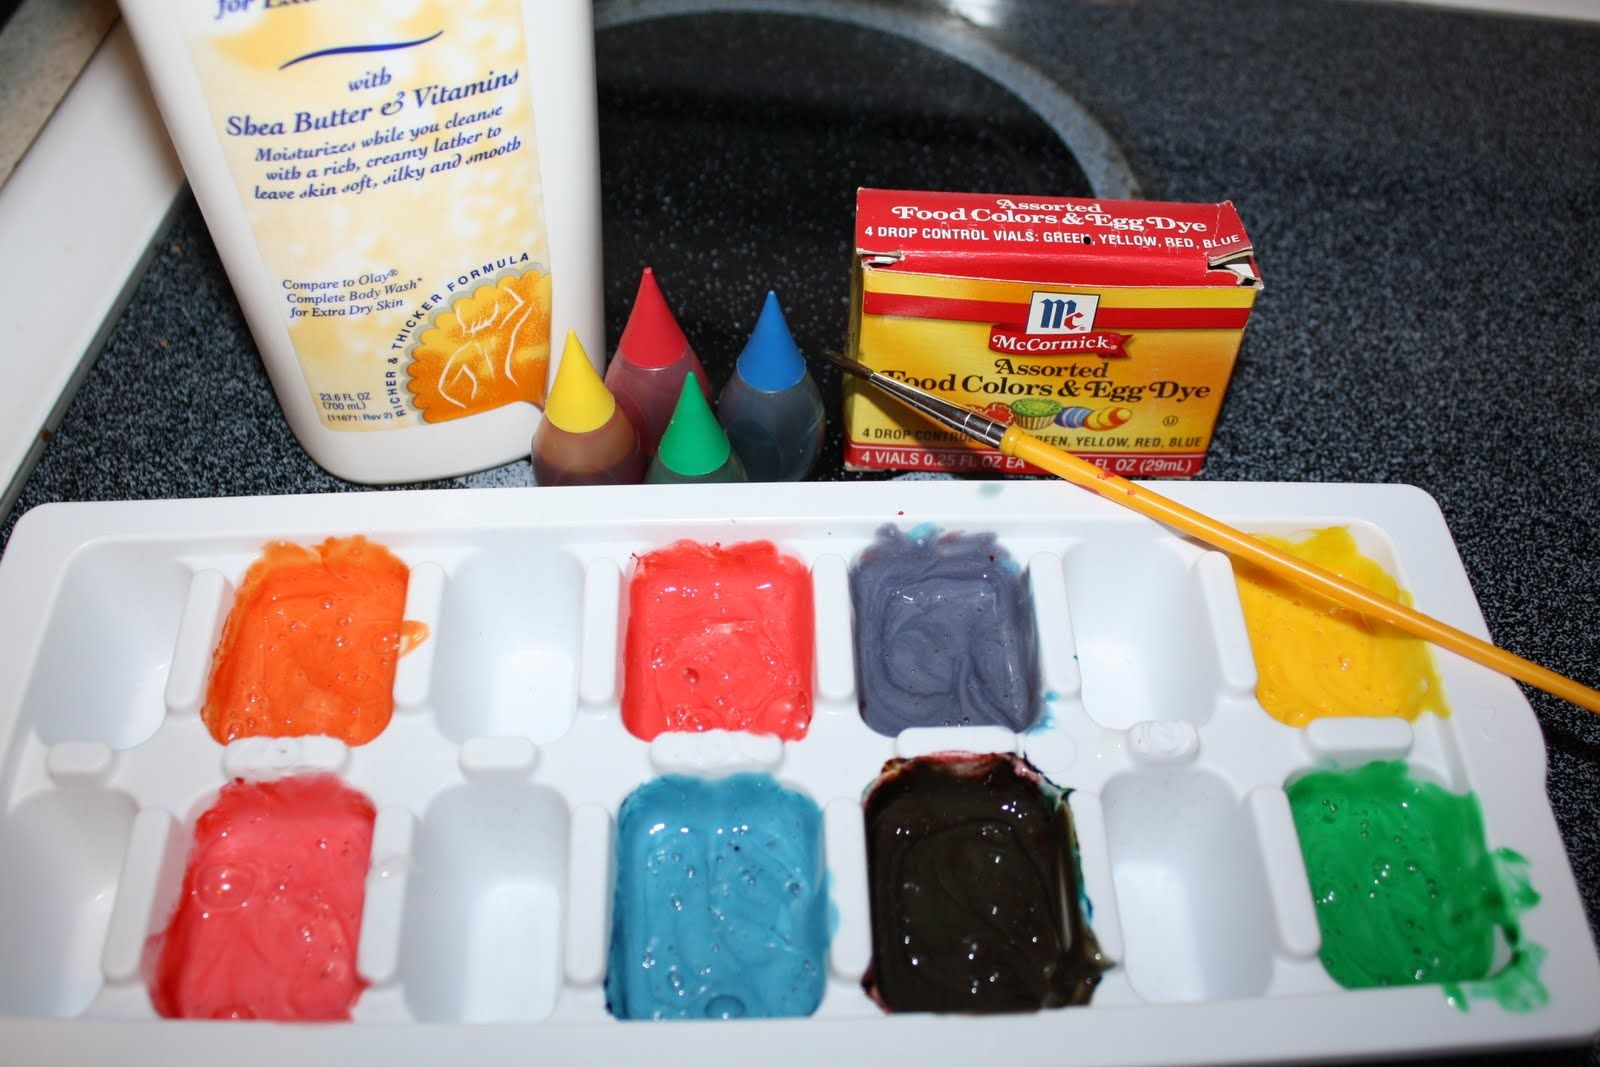 Use An Inexpensive Walmart Brand White Body Wash And Add Food Coloring To Make Desired Colors Keep Kids Entertained In The Bathtub Creating Masterpieces